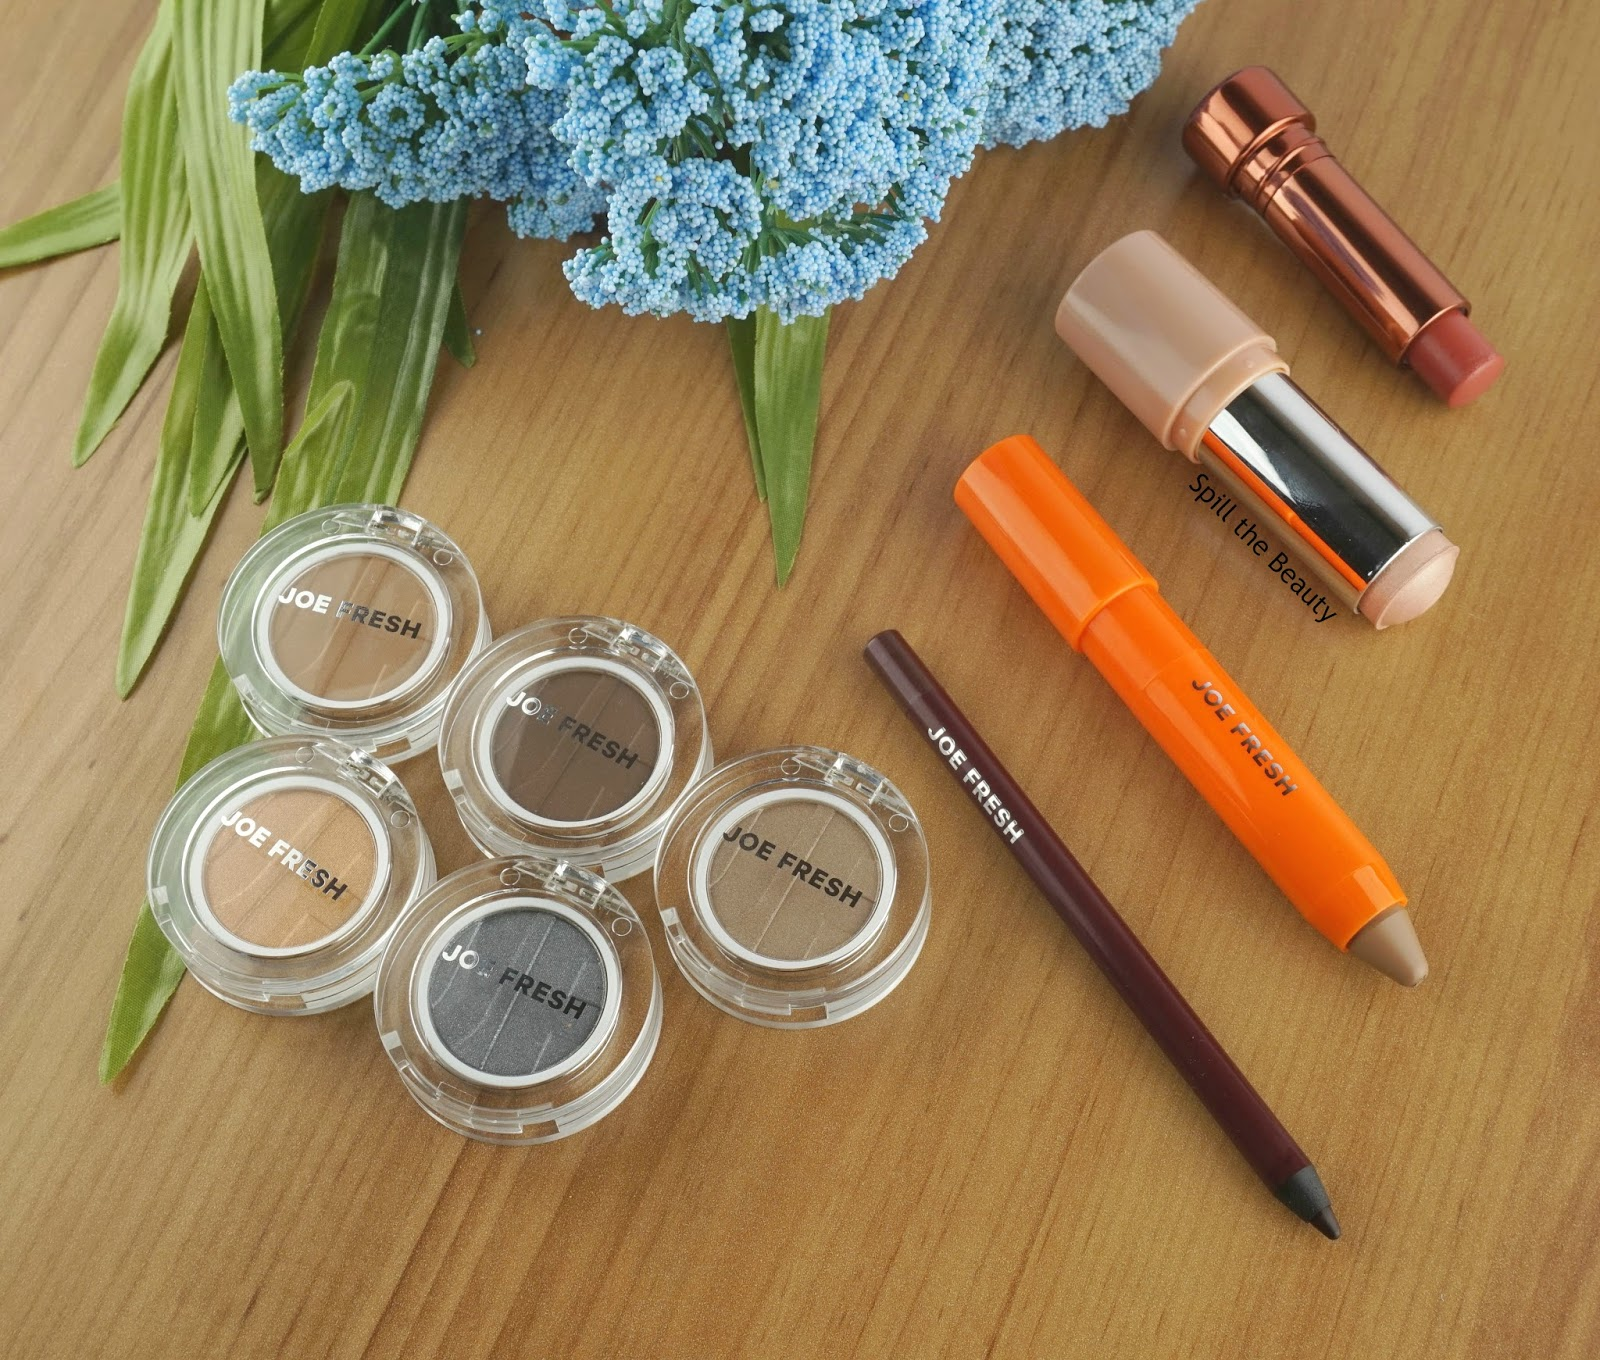 New from JOE FRESH Beauty – Review, Swatches, and Look